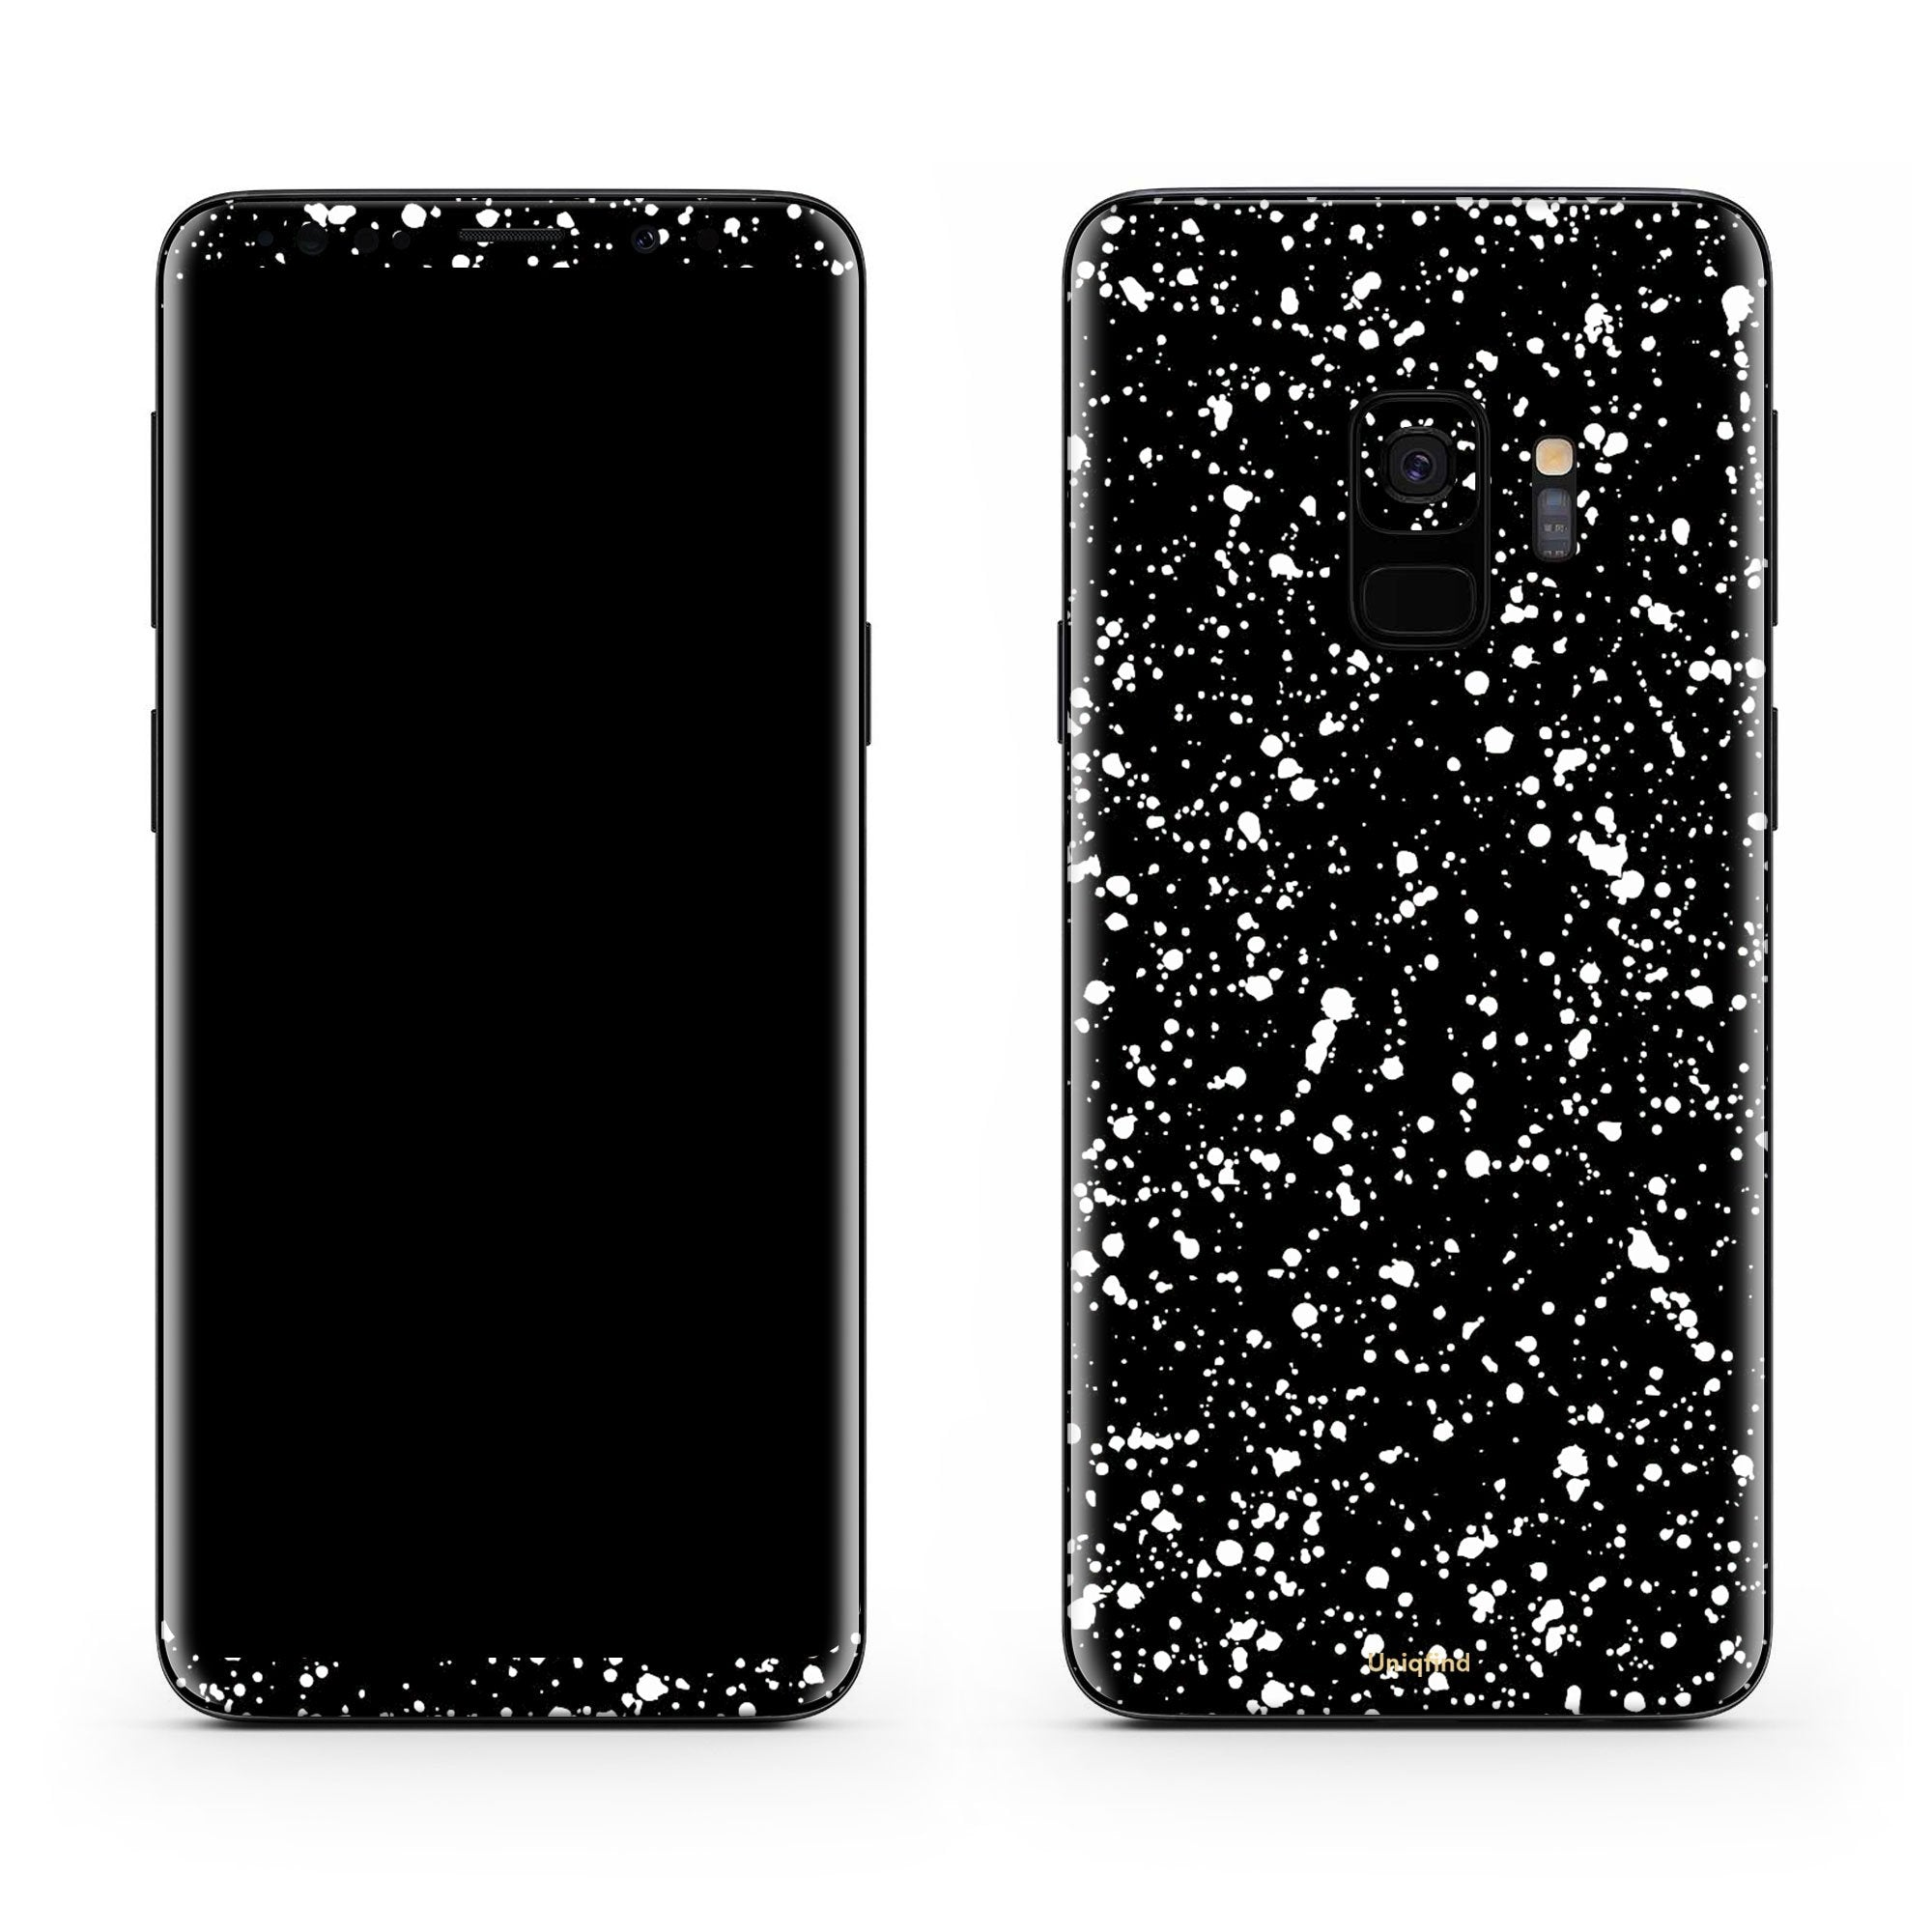 Black Speckle Galaxy S9 Skin + Case